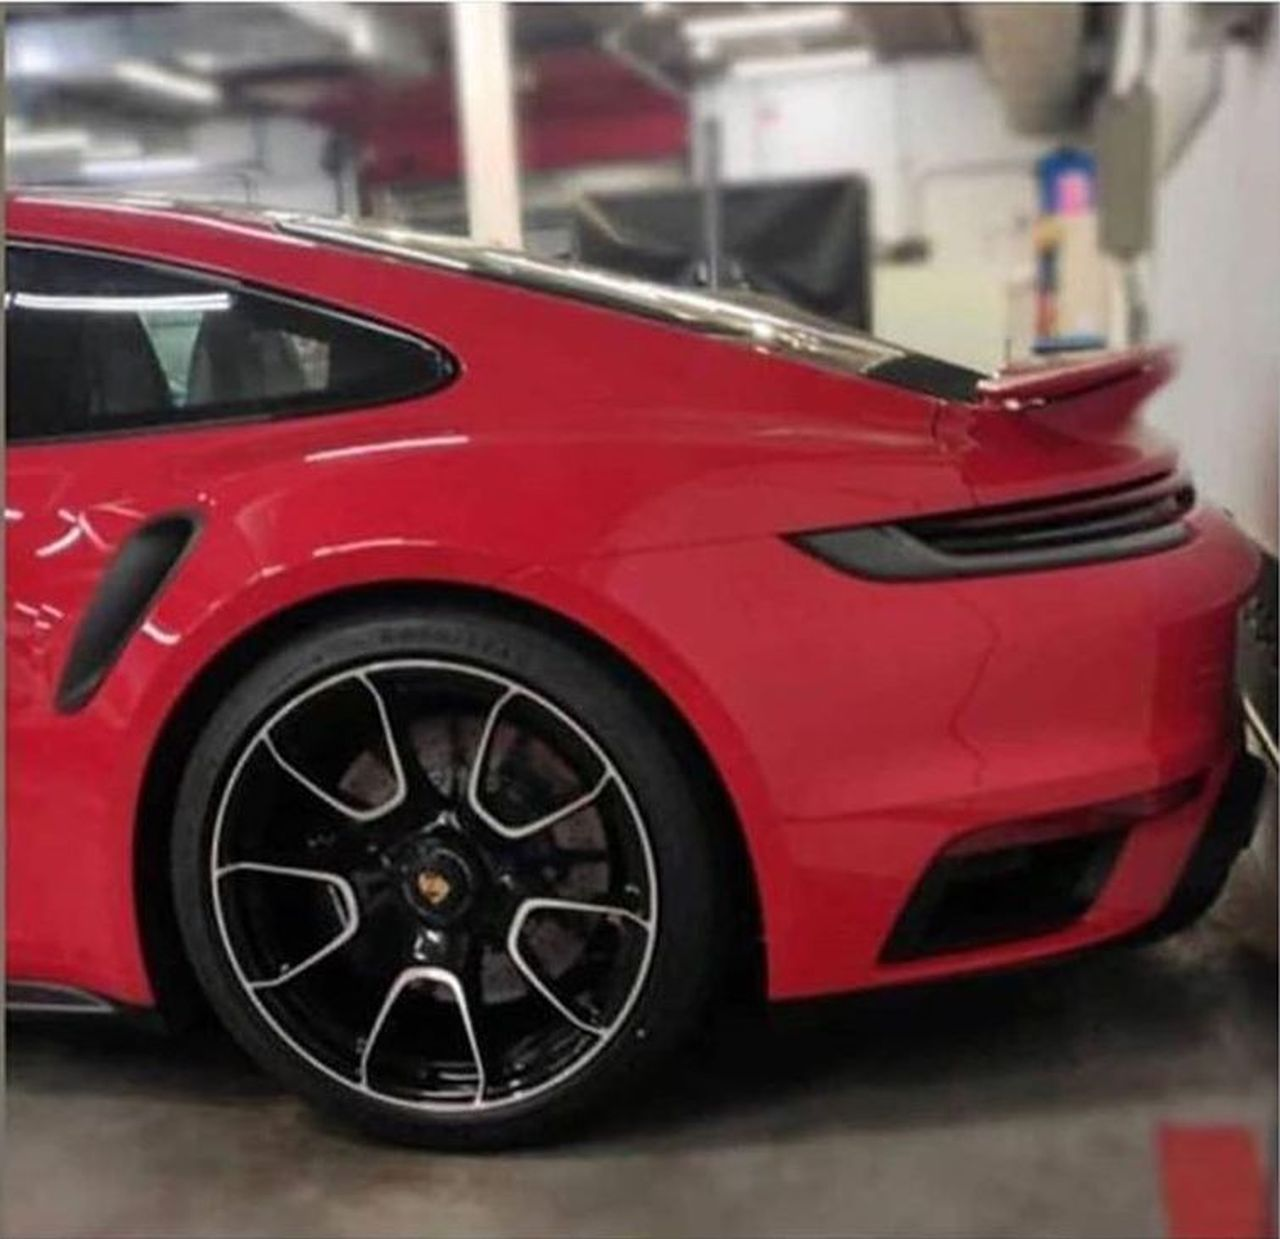 2021 Porsche 911 Turbo S 992 Leaked The Supercar Blog